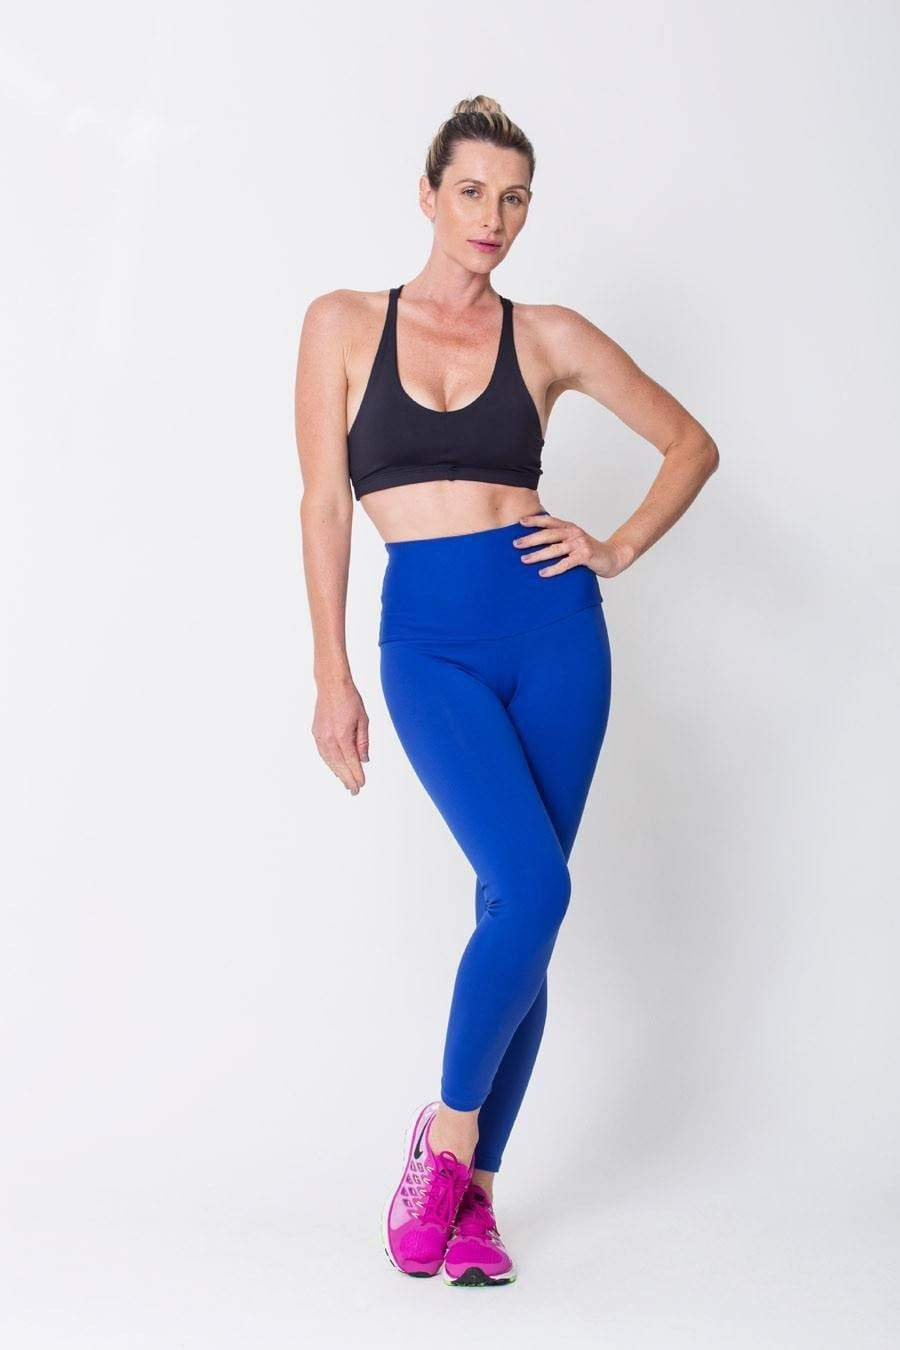 Royal High Up Legging - Sam's Fitness Goods